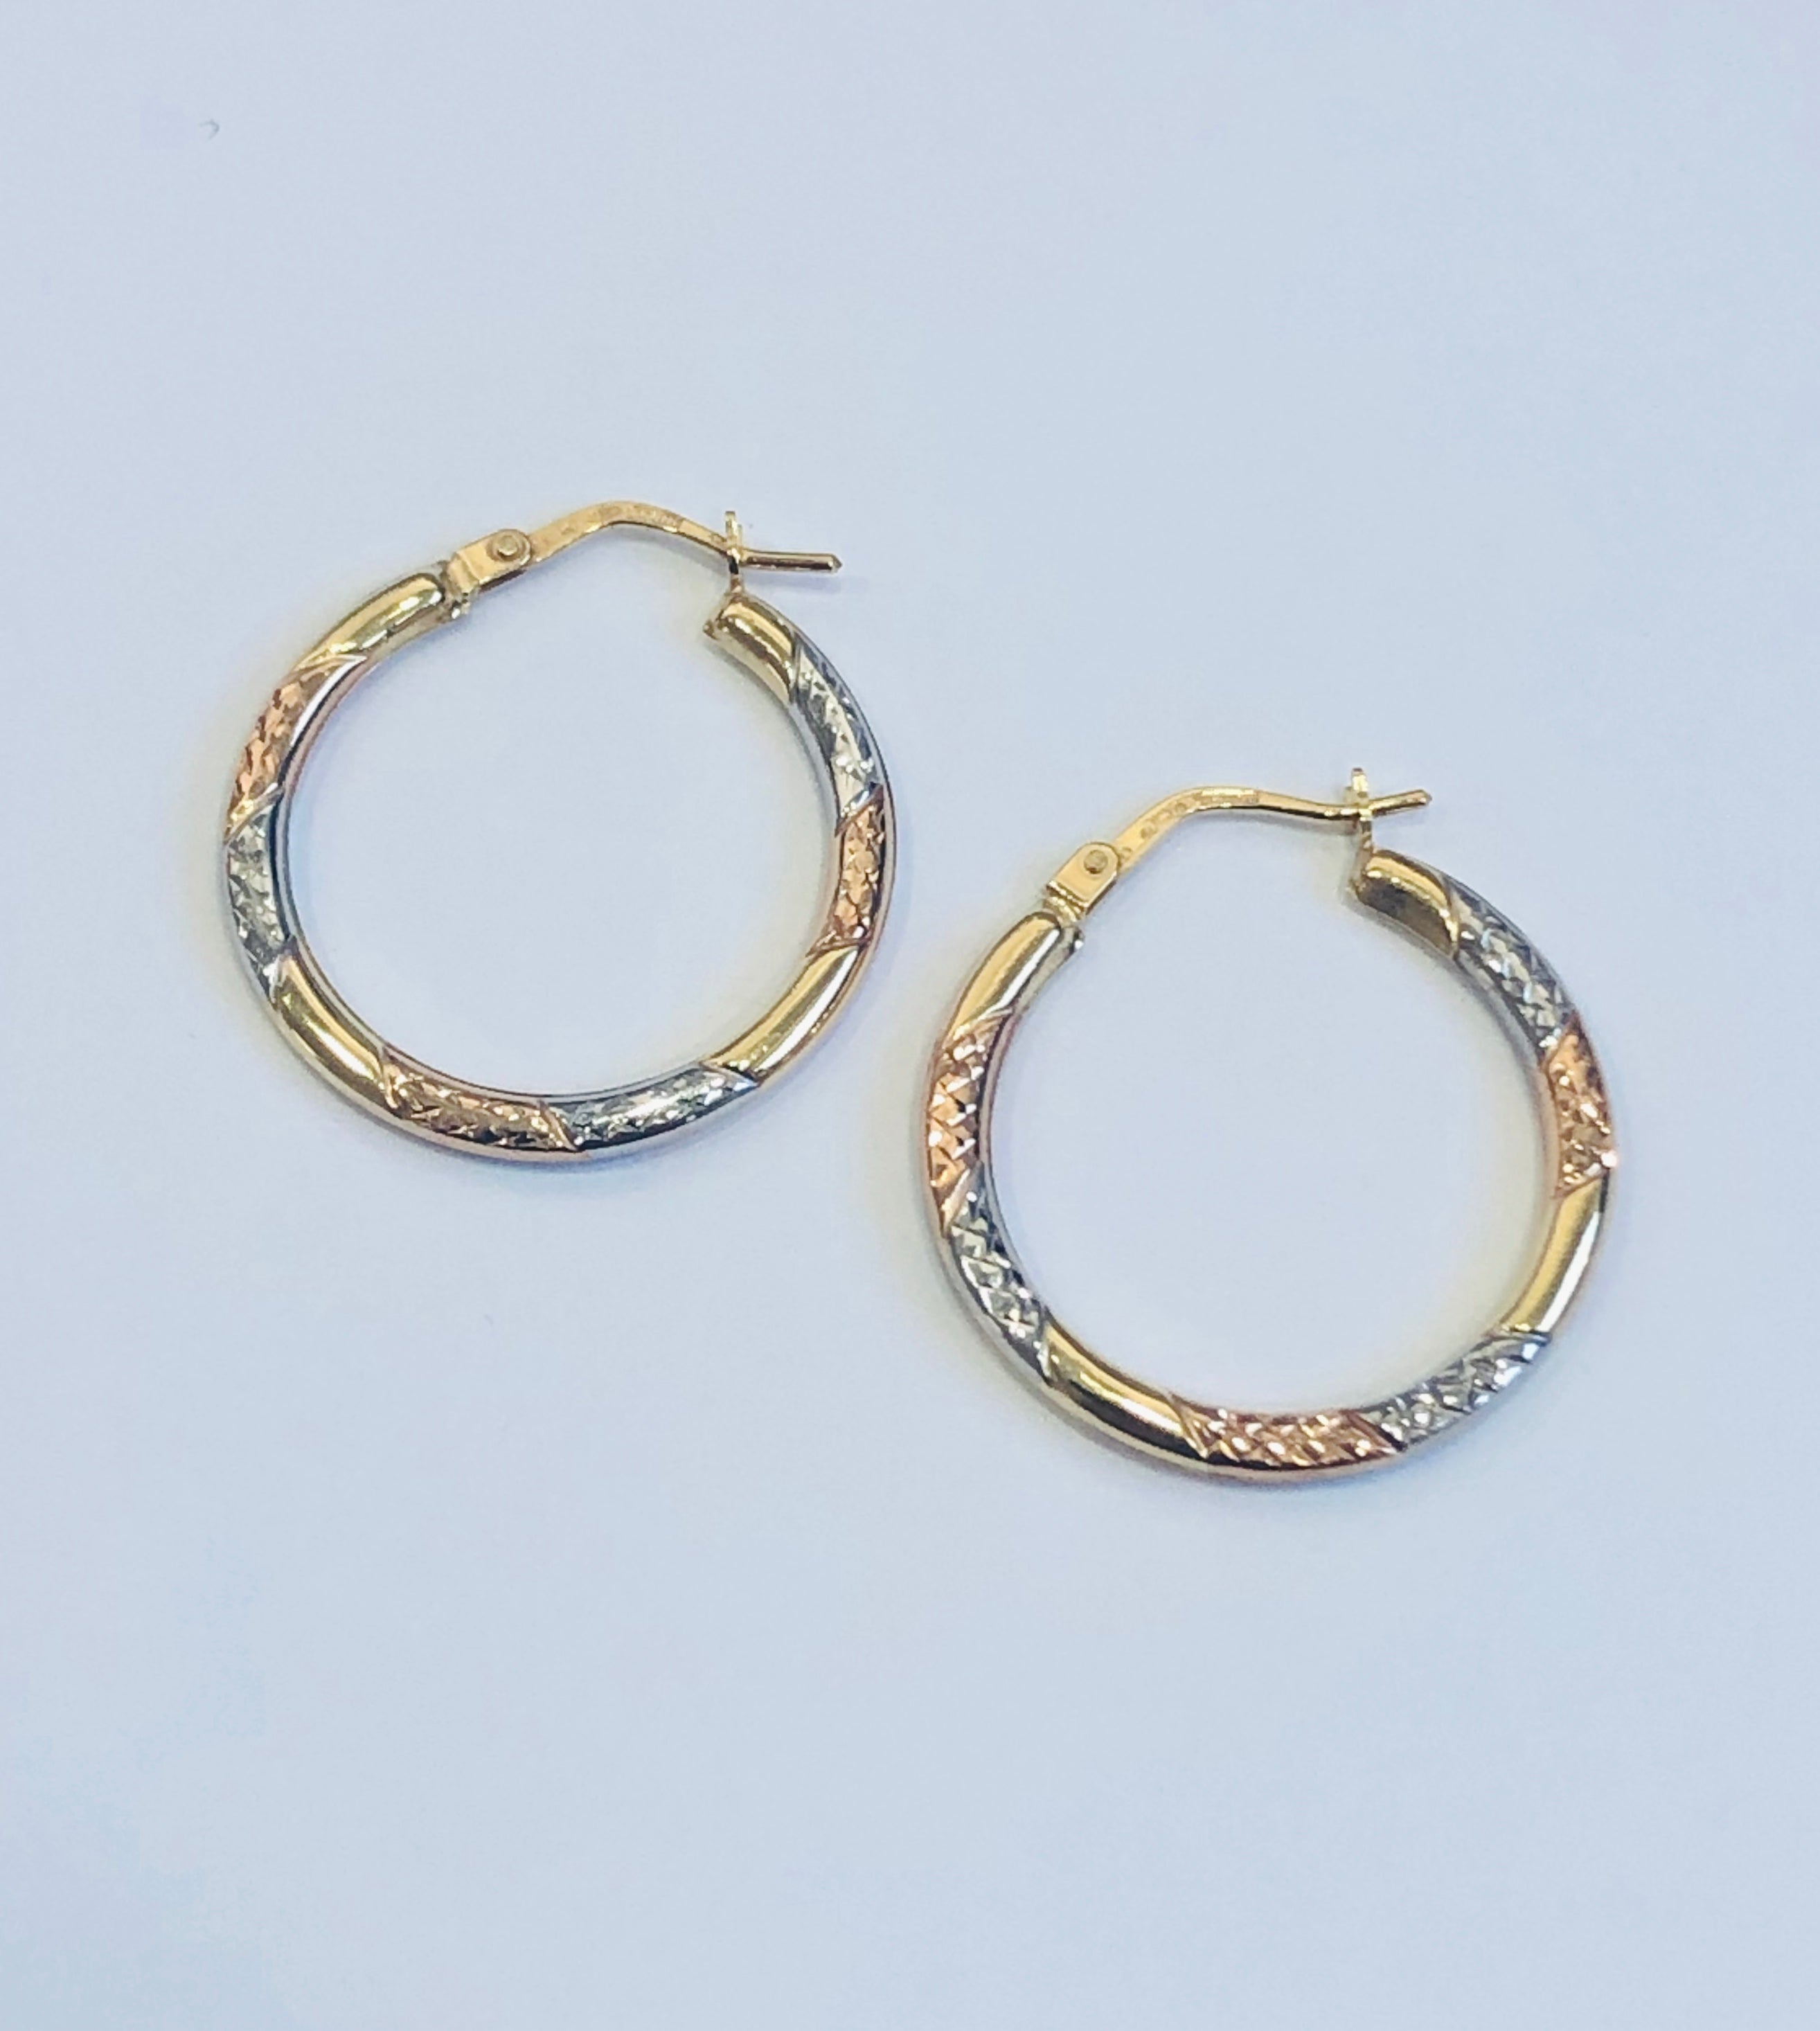 9ct Three Colour Gold Hoop Earrings 19mm x 2mm - 010